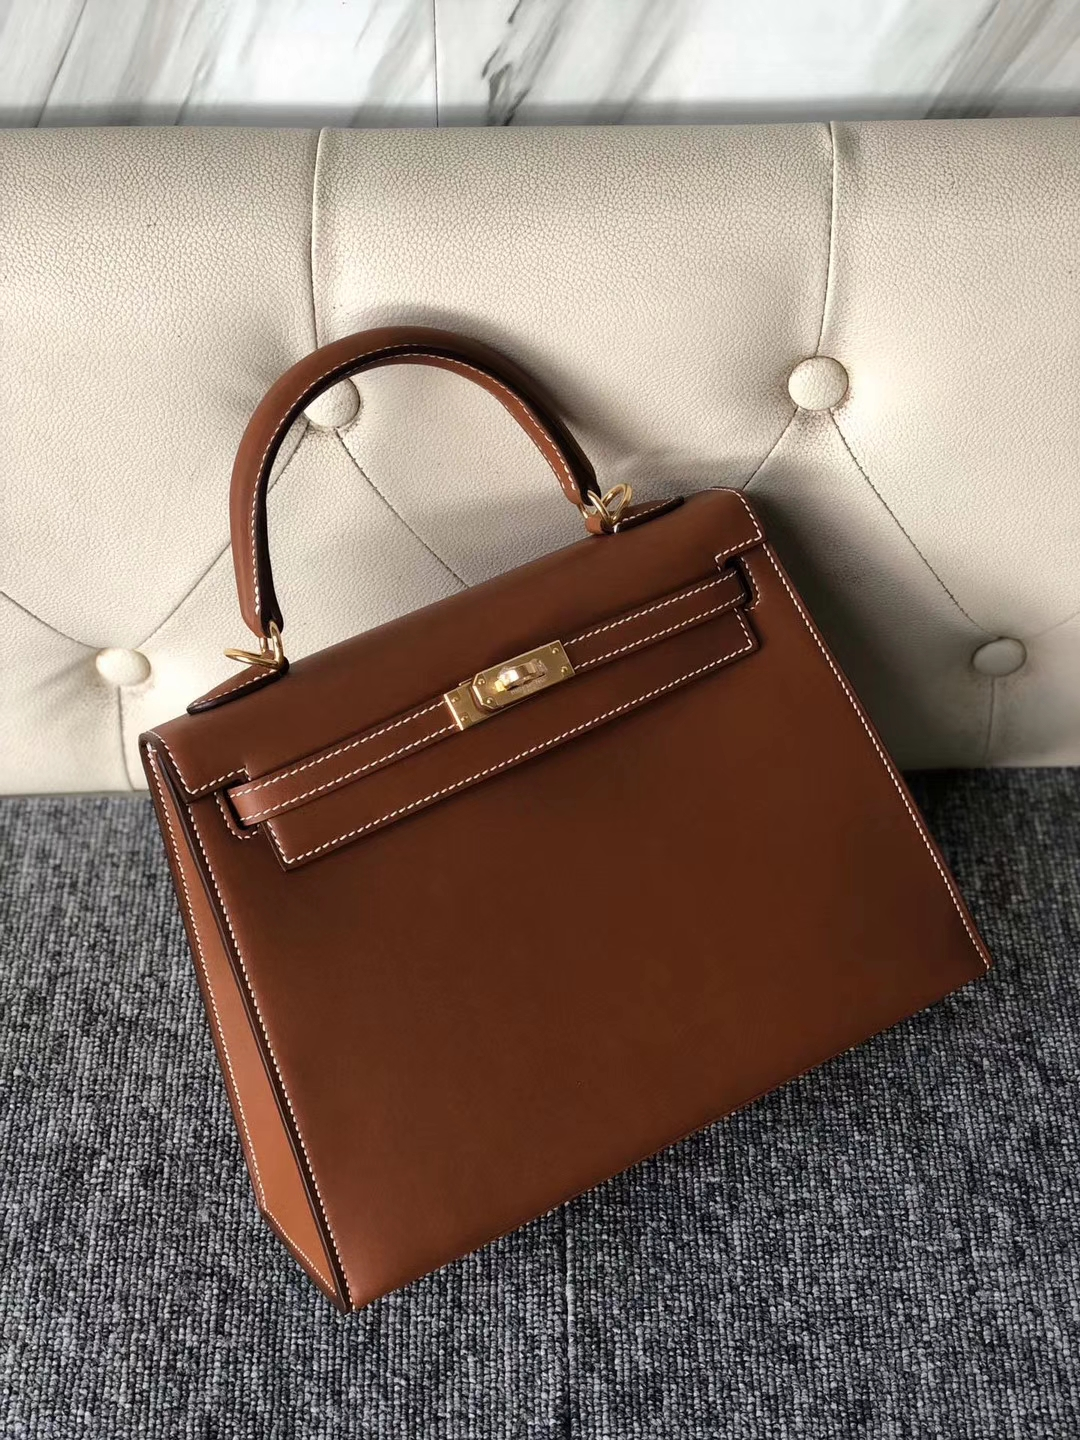 Customize Hermes Bareniz Natural Gold Sellier Kelly25CM Gold Hardware